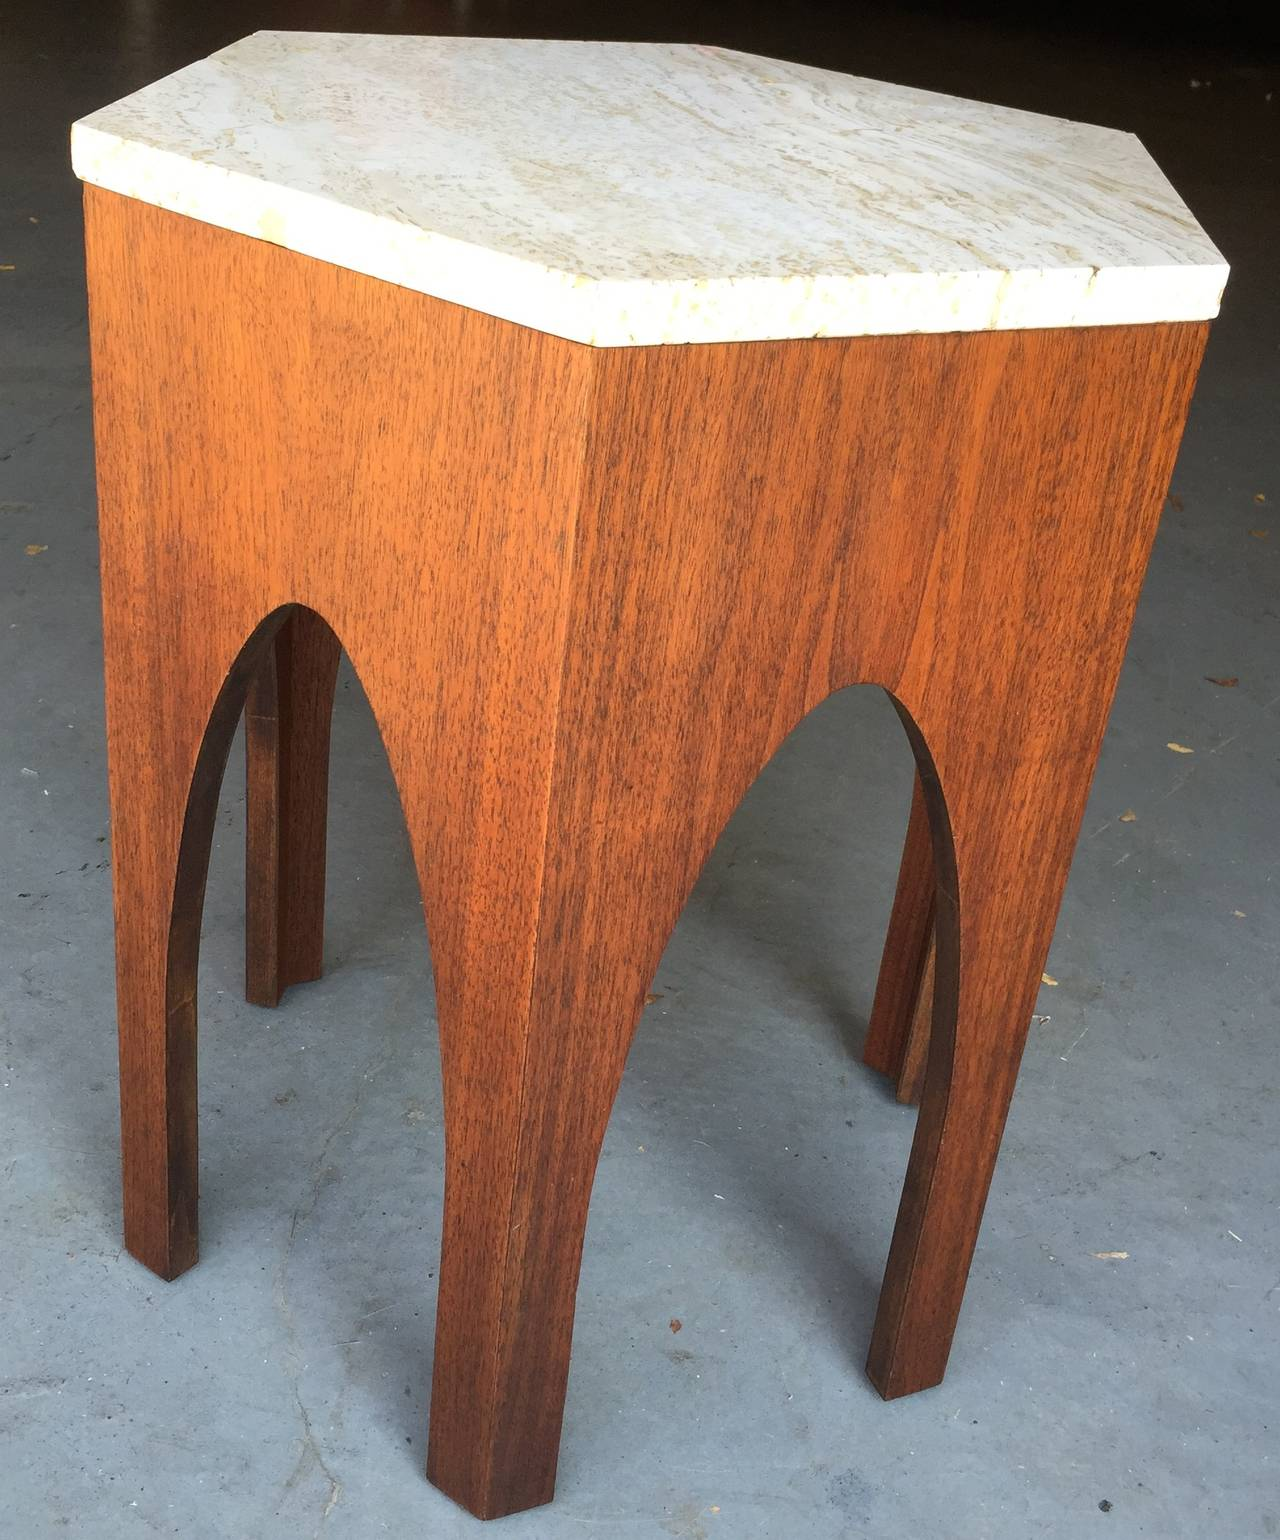 Great Moroccan-esque arched marble table with hexagonal marble top.